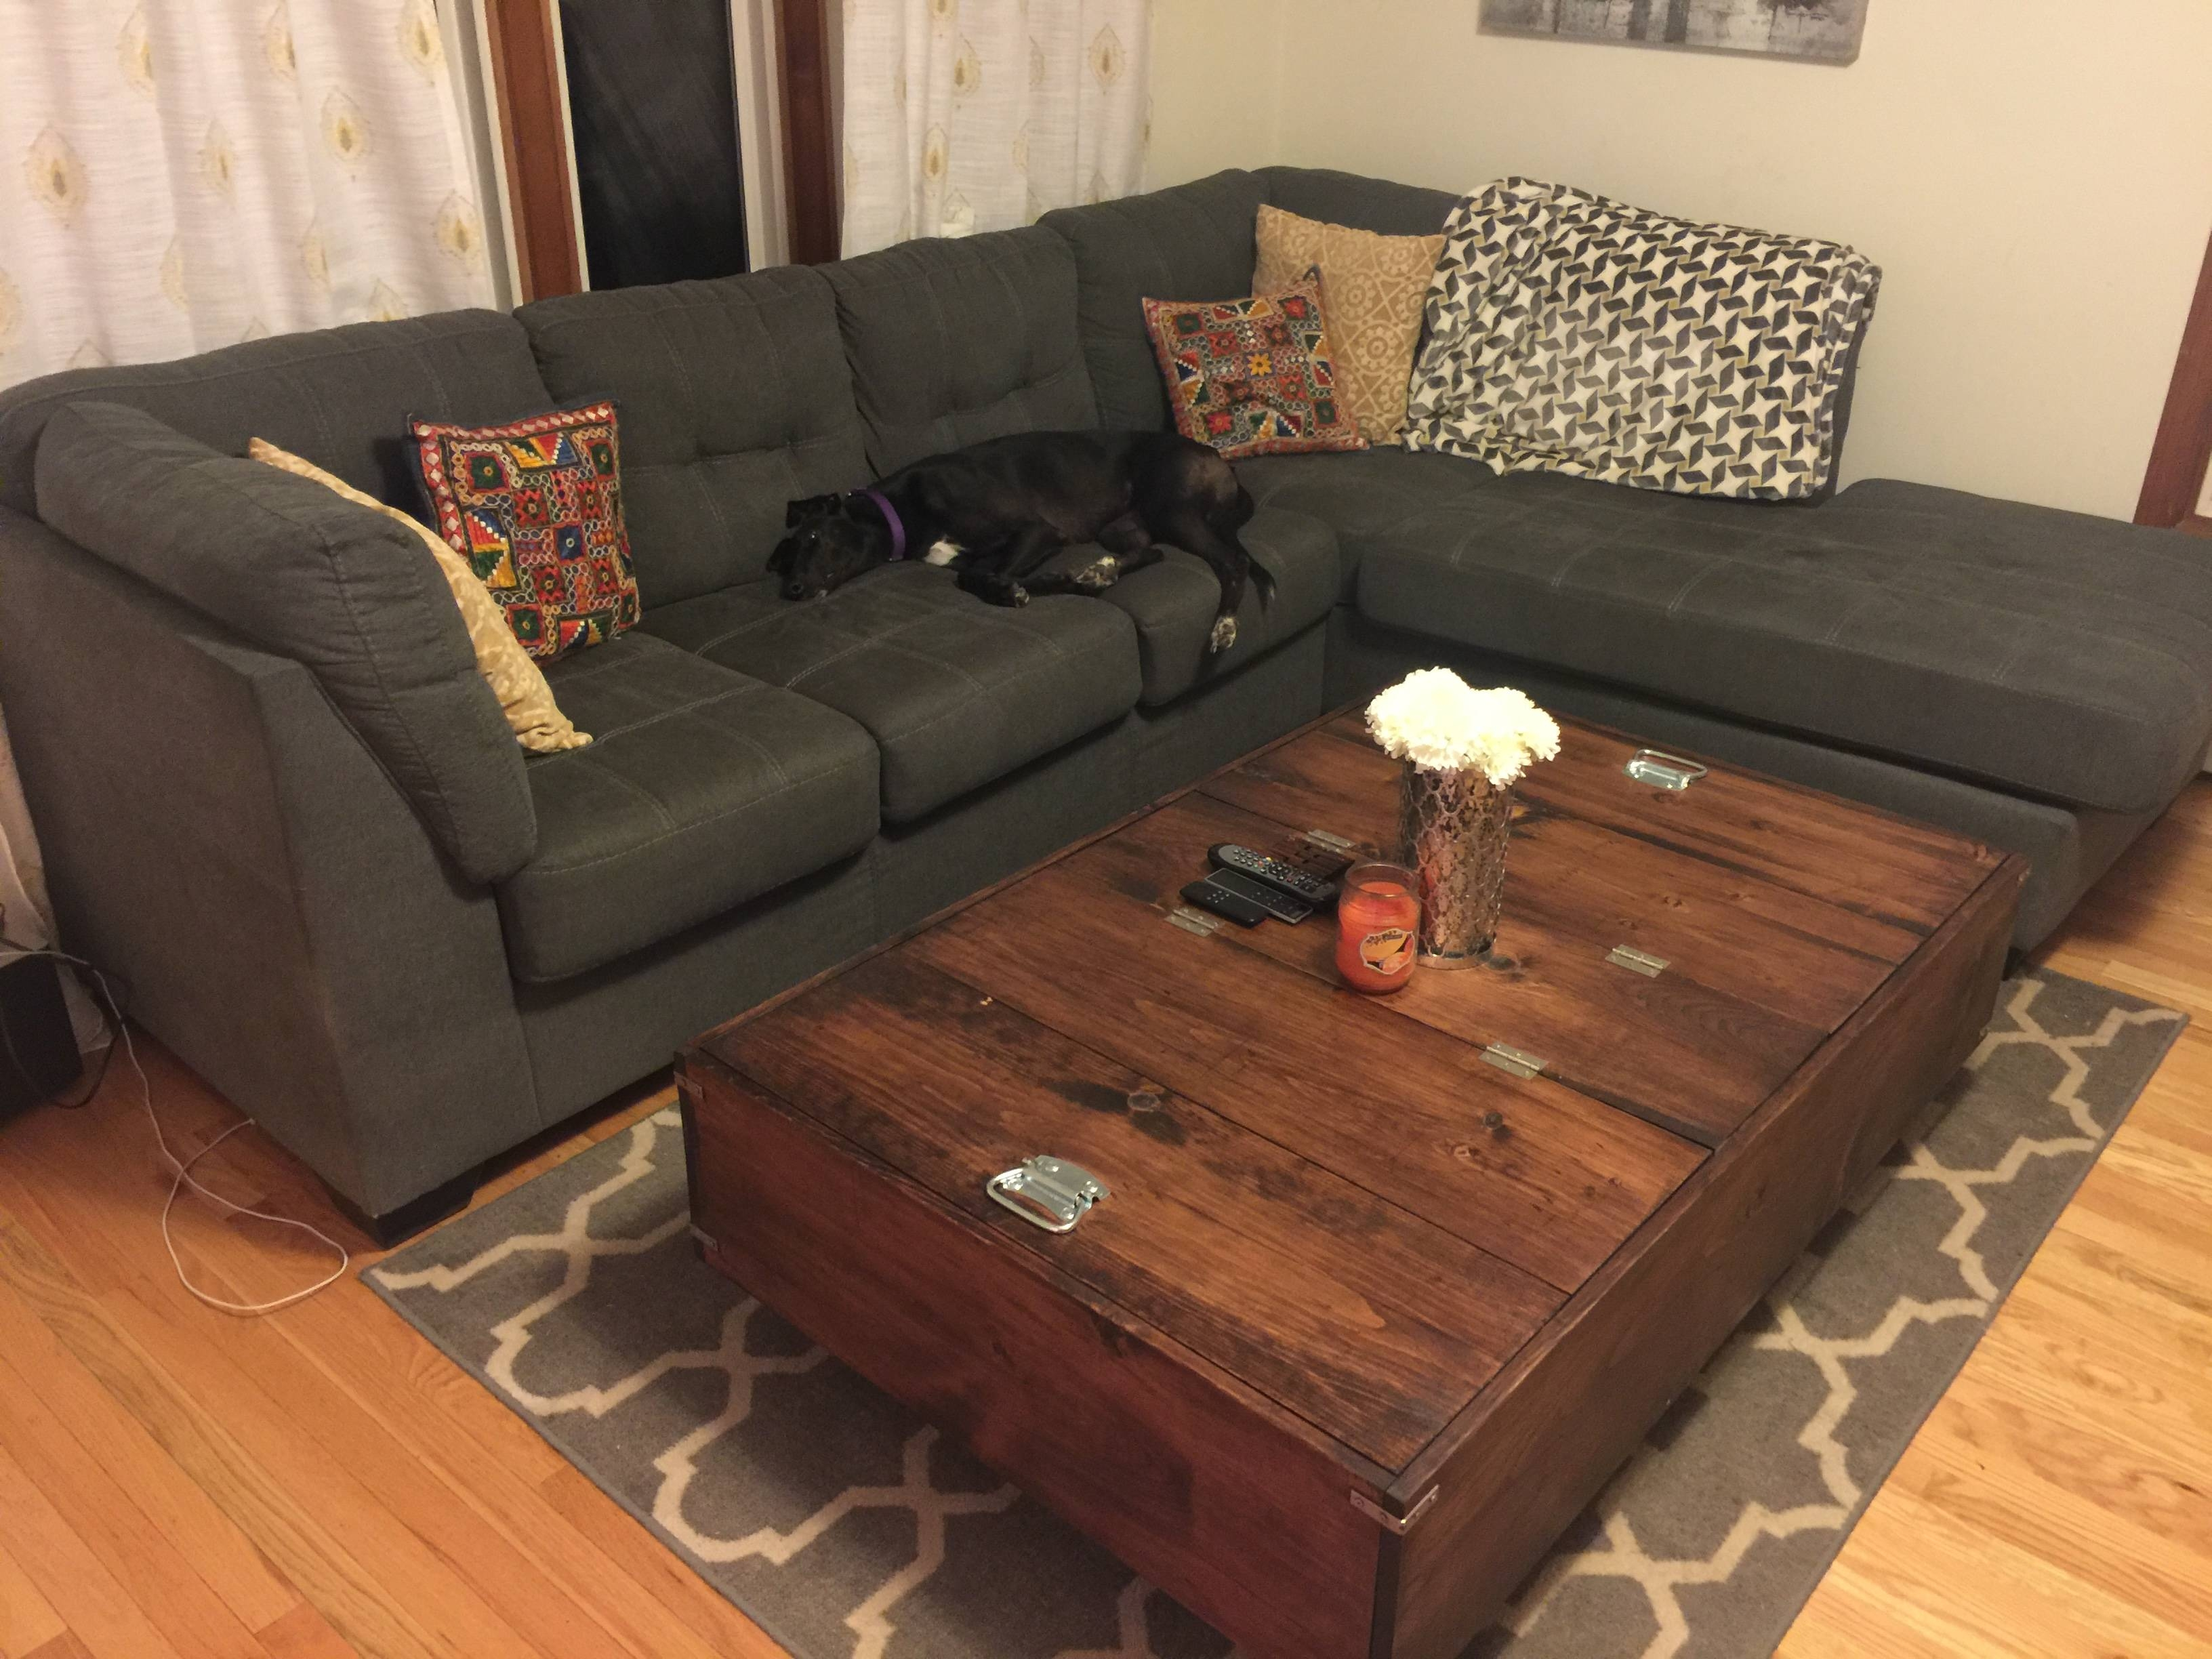 Diy Large Coffee Table With Storage – Album On Imgur Intended For Large Coffee Table With Storage (View 2 of 12)